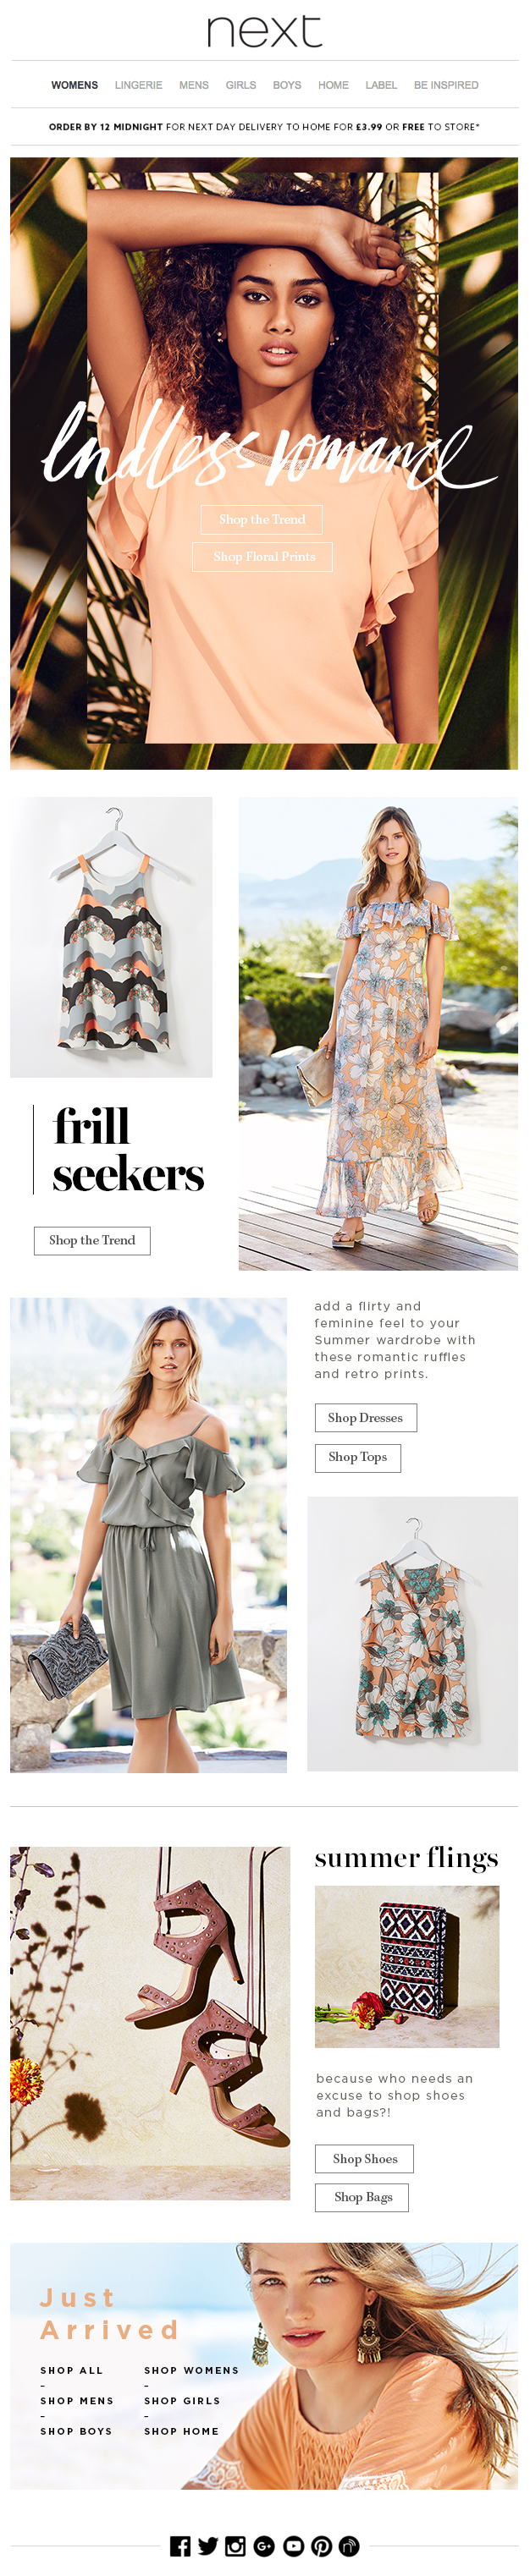 next - Just arrived + Summer styles to fall in love with... #newsletter #design #email #emailnewsletter #layout #newsletterlayout #fashion